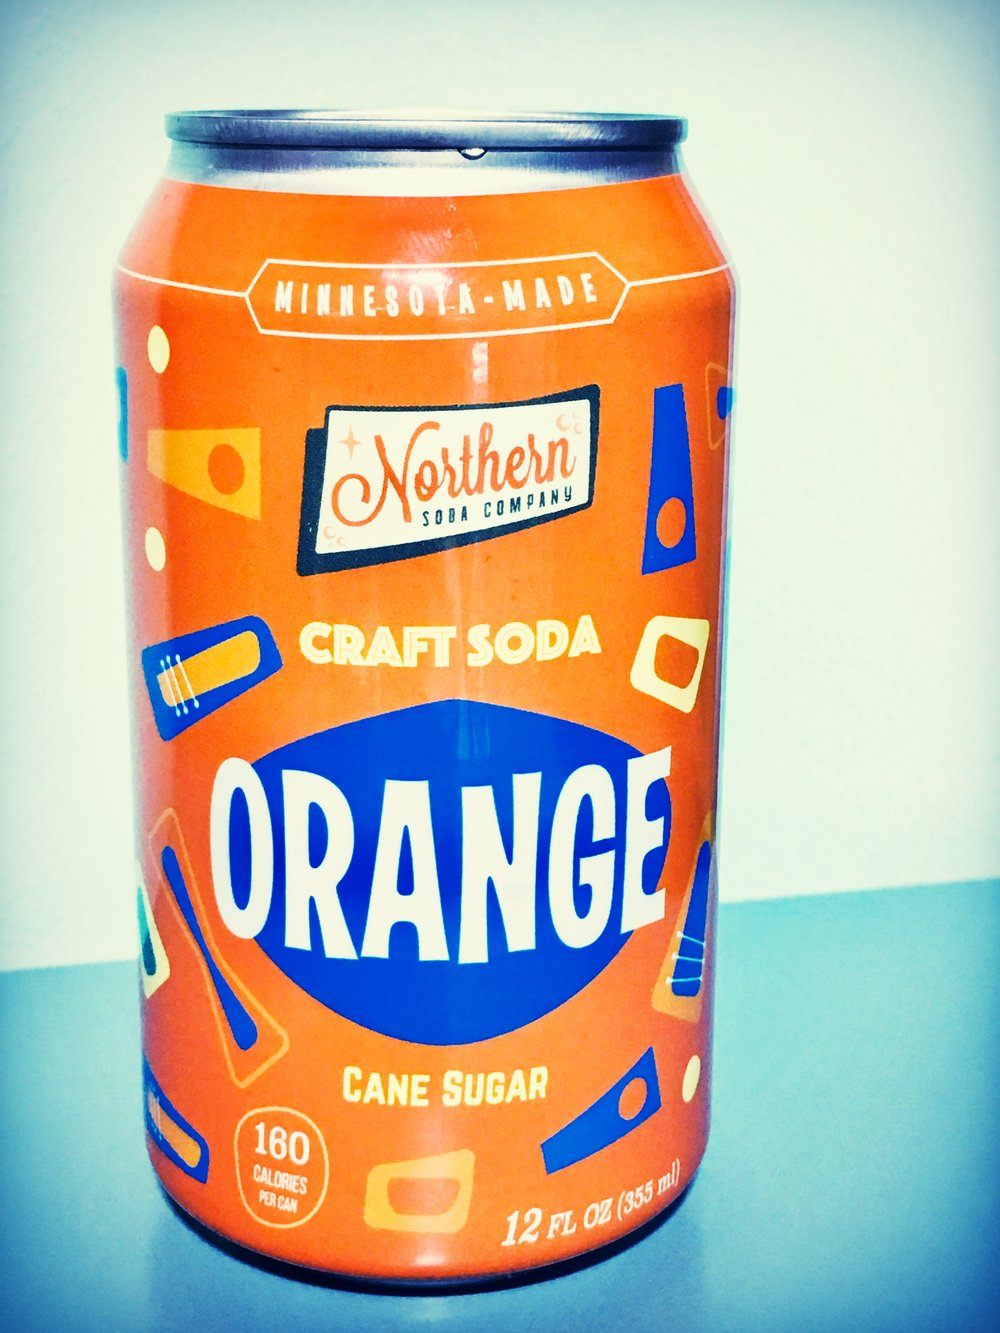 a classic orange soda based on a recipe from 1942. sweet and refreshing!